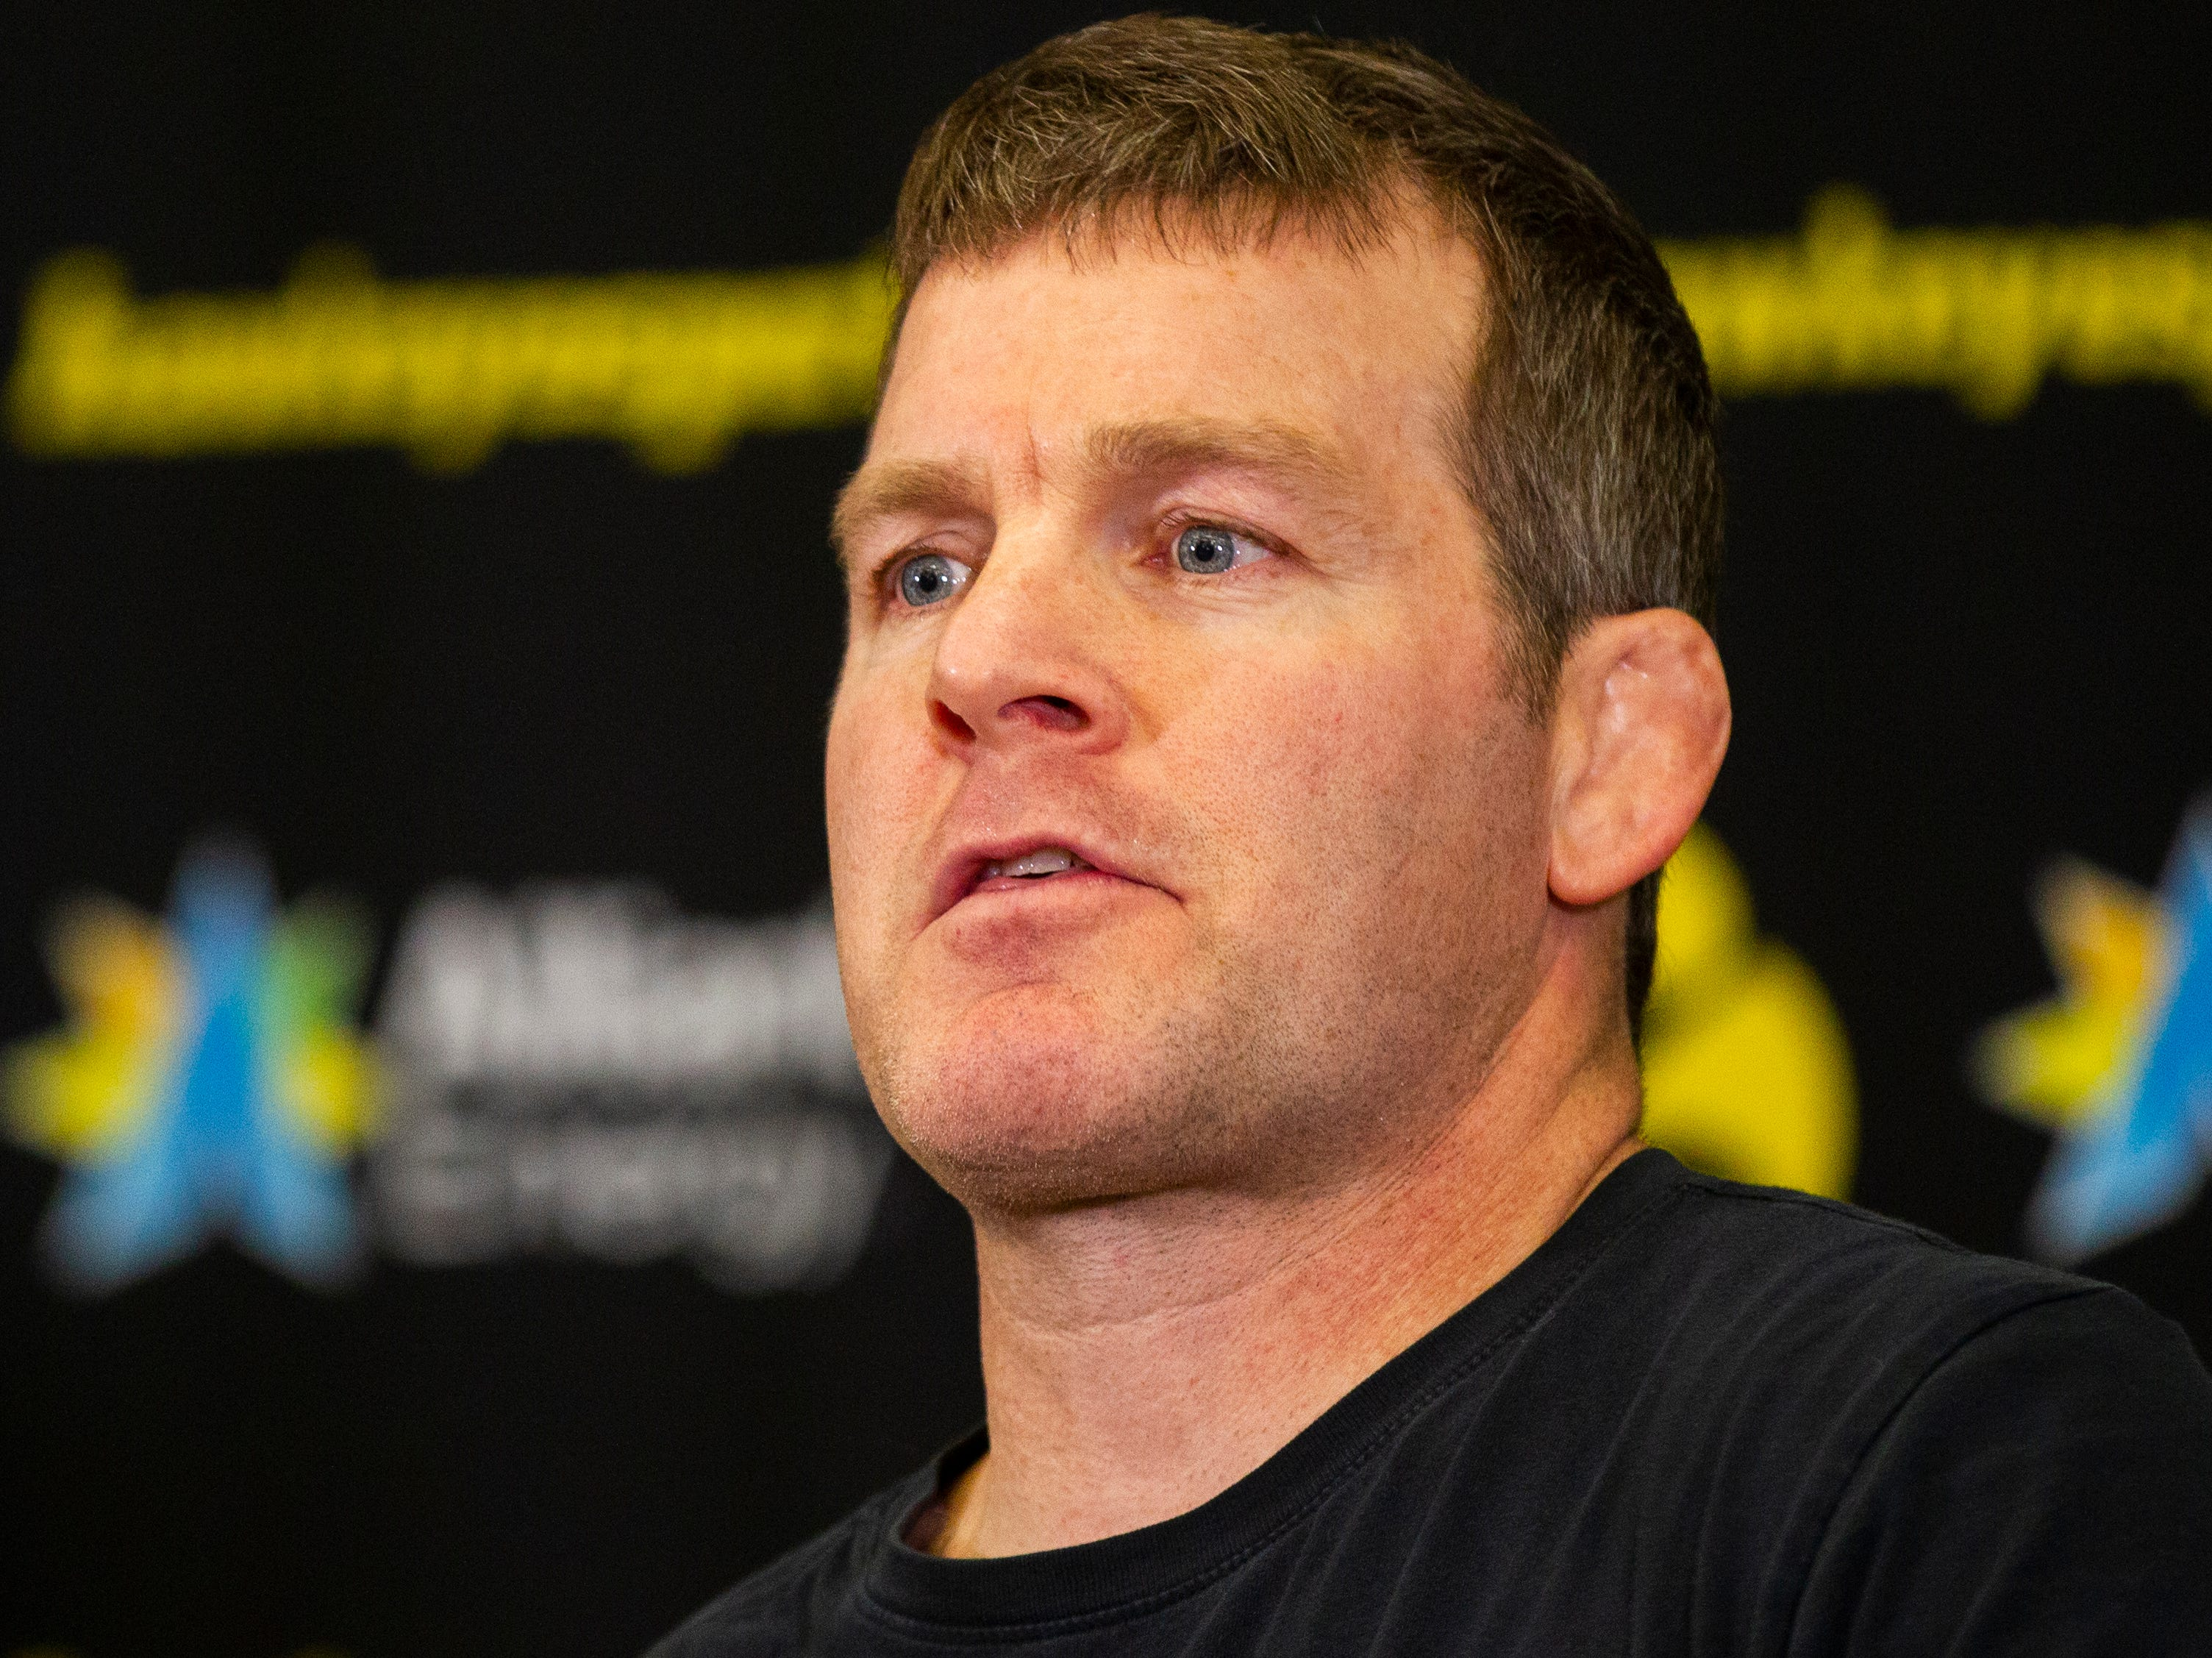 Iowa wrestling head coach Tom Brands talks with reporters during Hawkeye wrestling media day on Monday, Nov. 5, 2018, inside the Dan Gable Wrestling Complex at Carver-Hawkeye Arena in Iowa City.